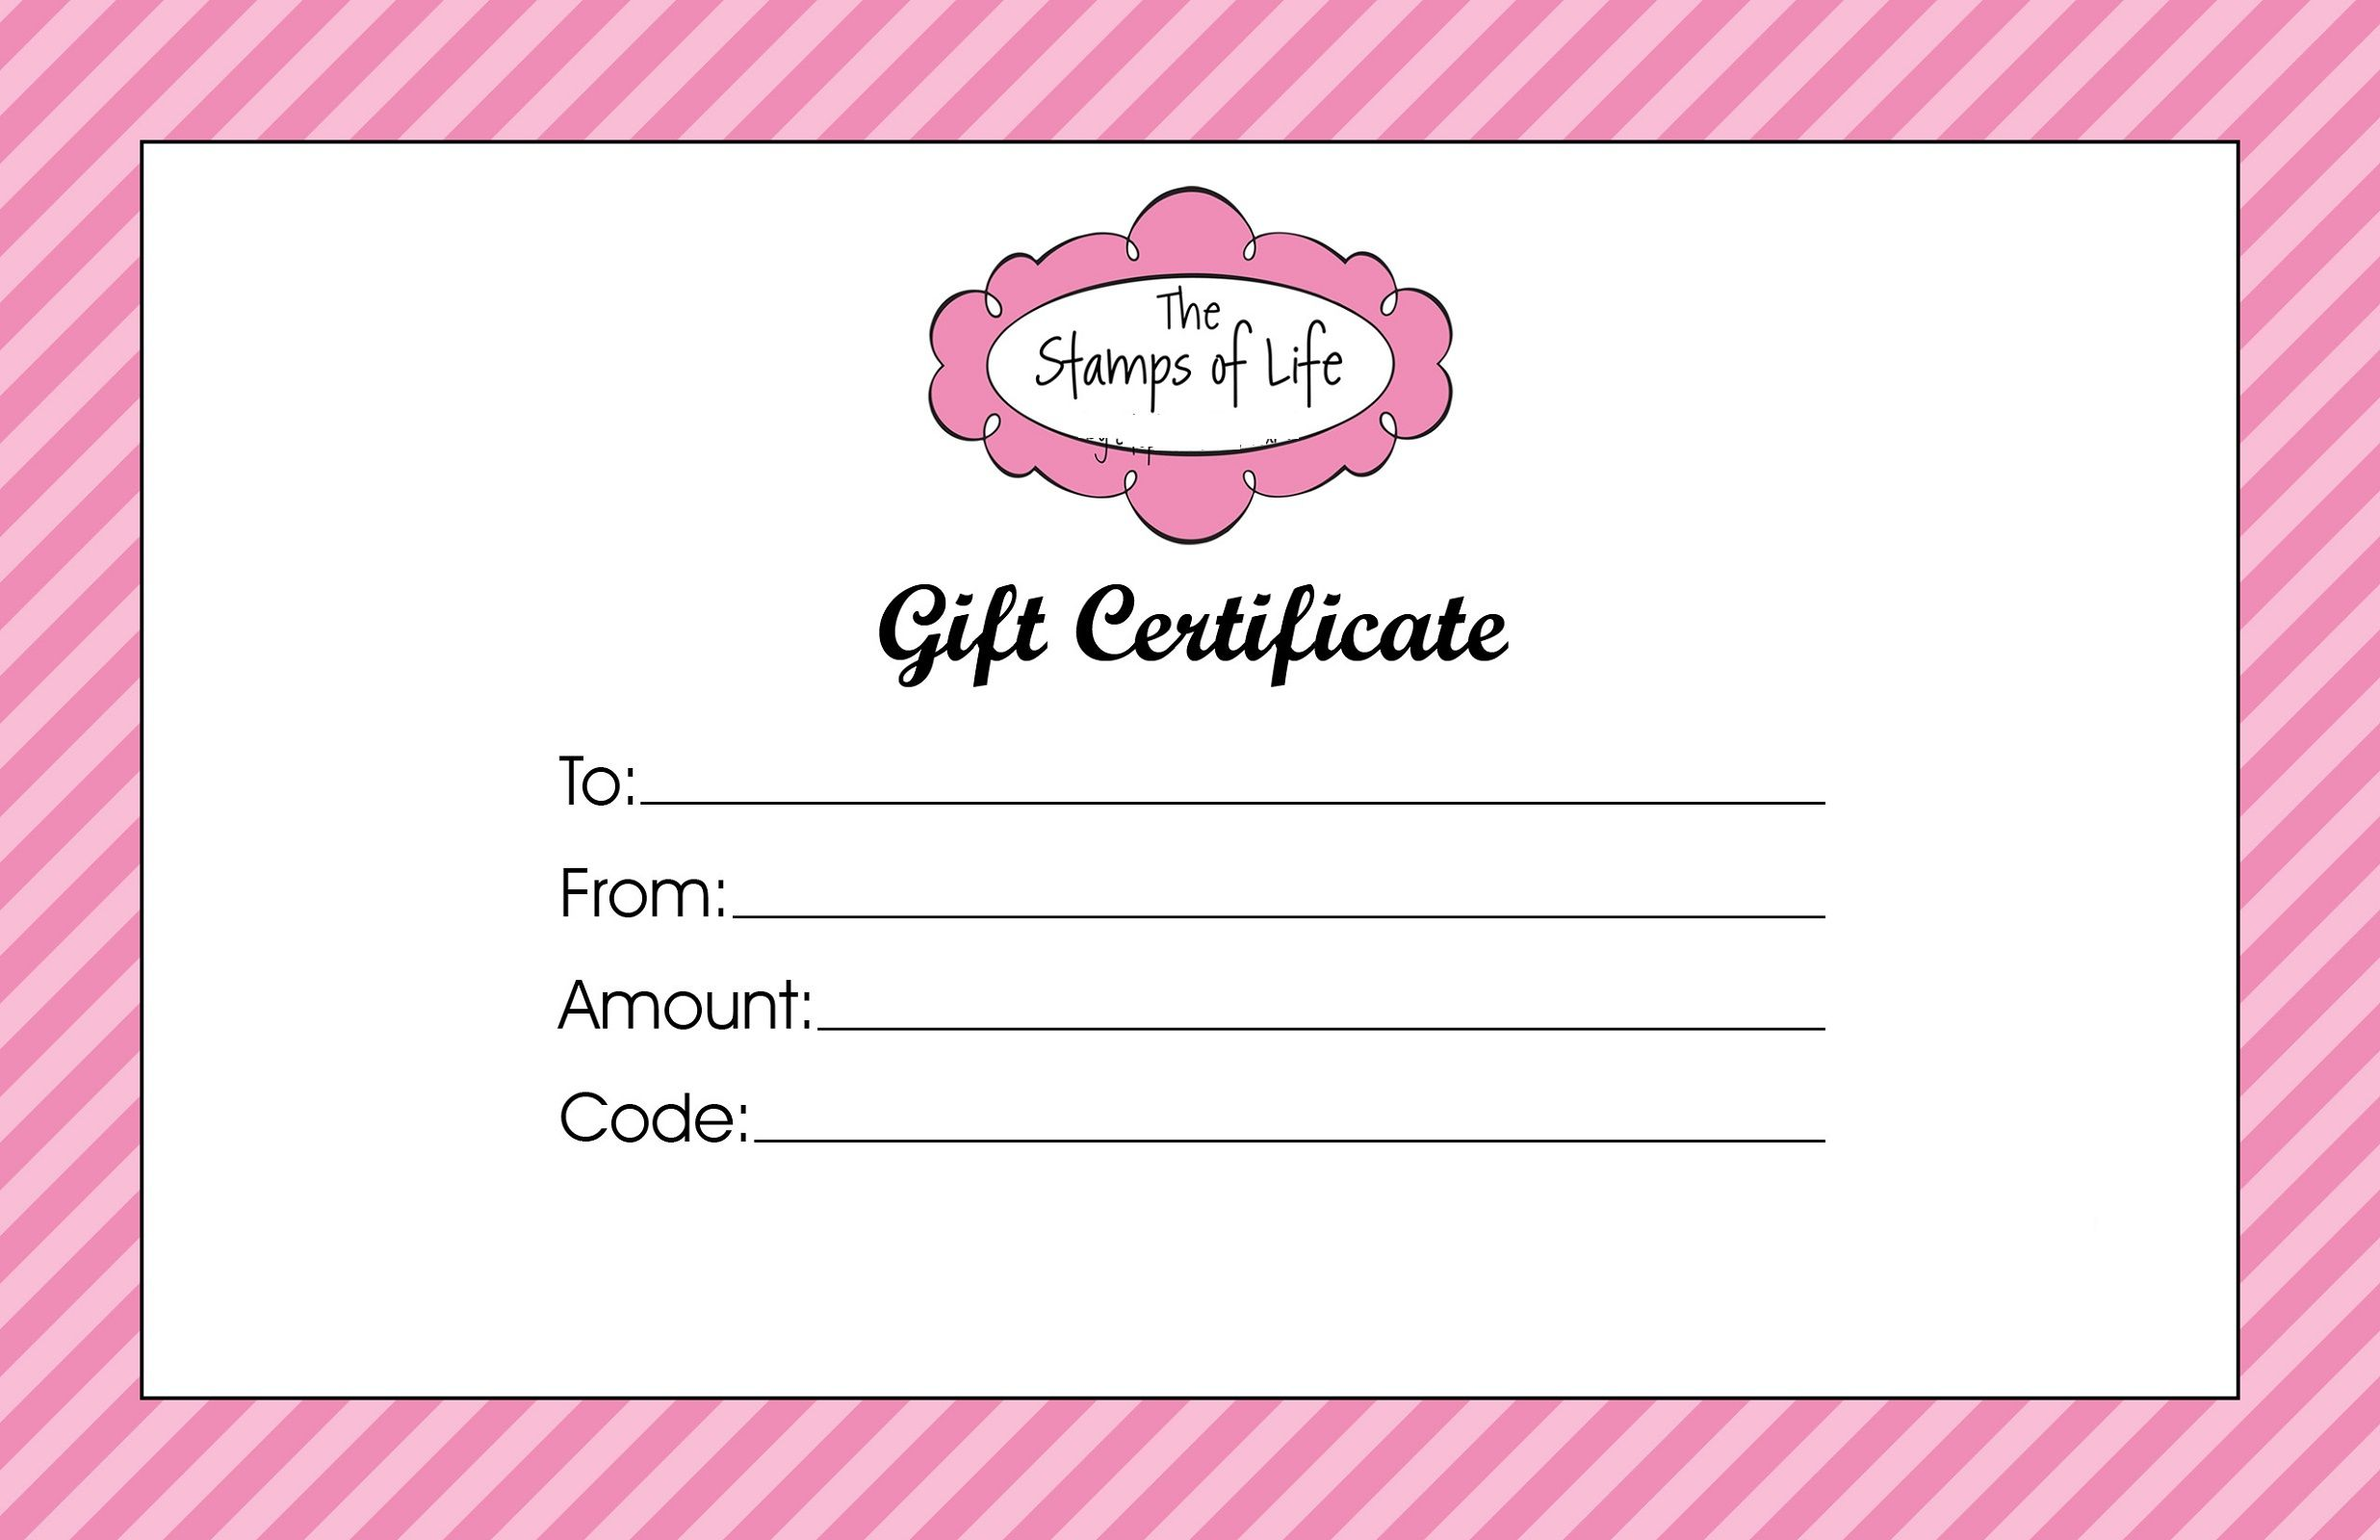 Gift Certificate Templates To Print Activity Shelter Regarding Pink Gift Cer Gift Certificate Template Gift Certificate Template Word Beauty Gift Certificate Free gift card template word